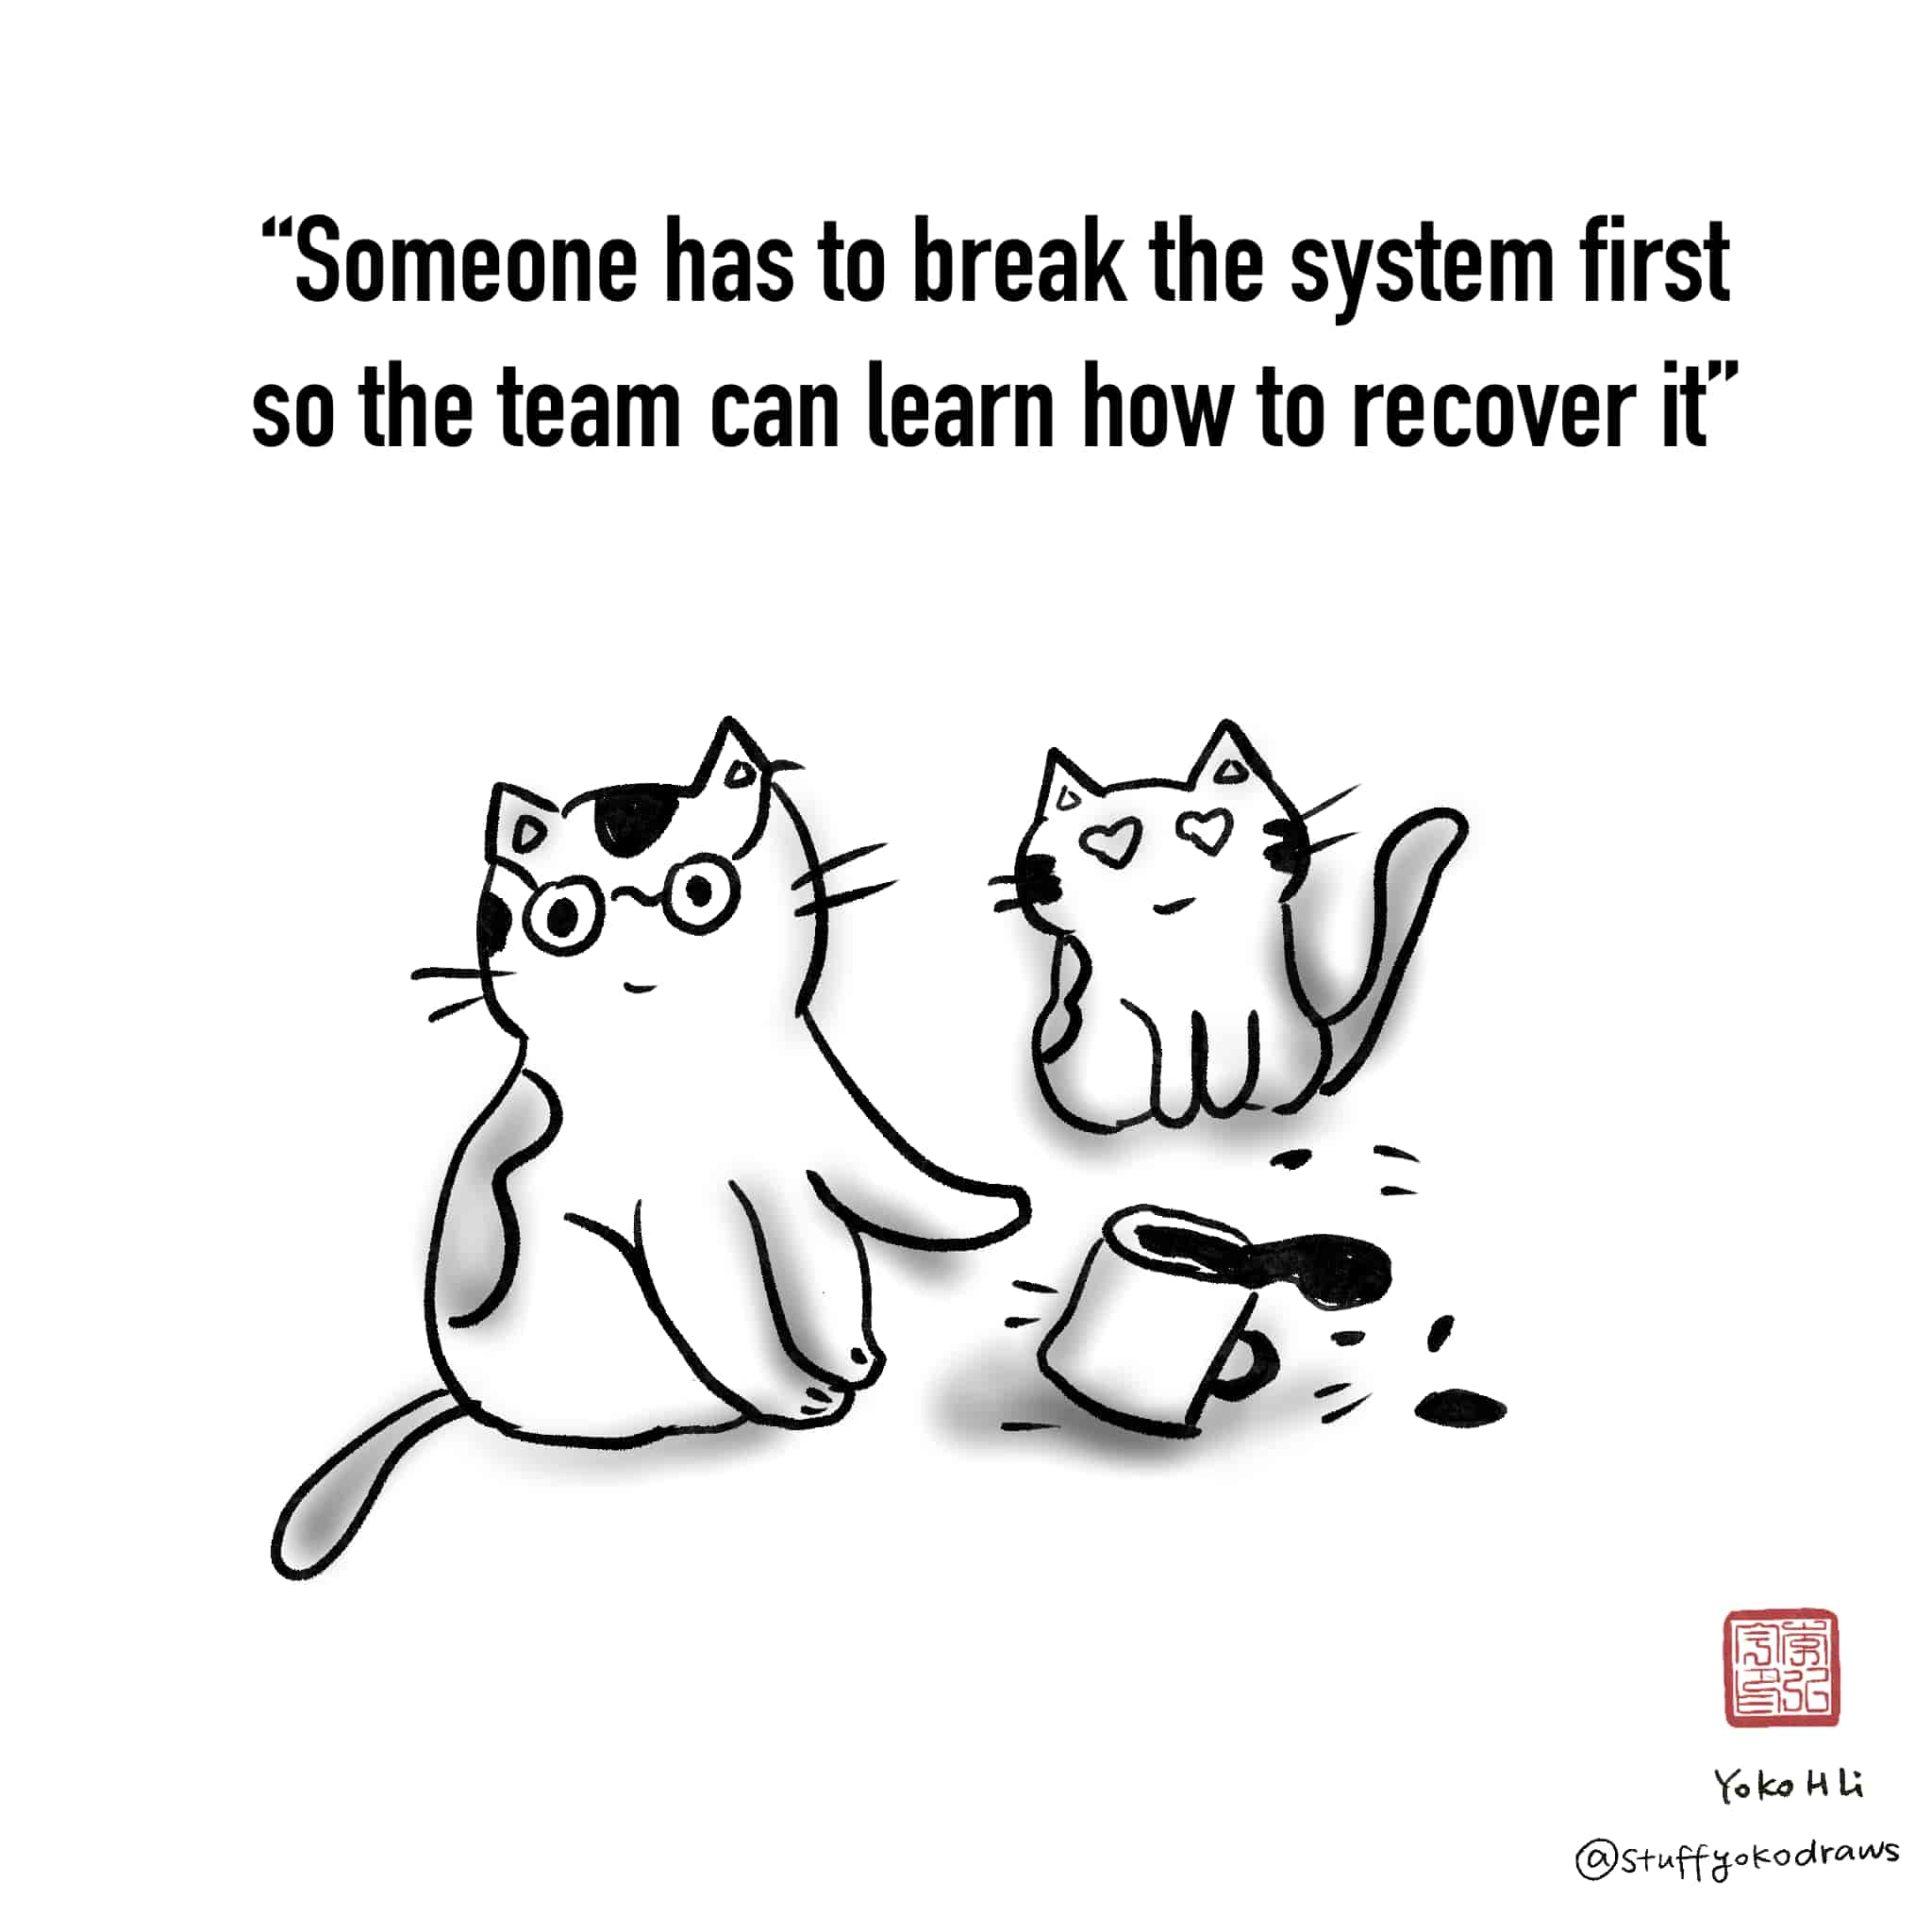 Comic says: Someone has to break the system first so the team can learn how to recover it. Image: Cat tipping over coffee with another looking on.